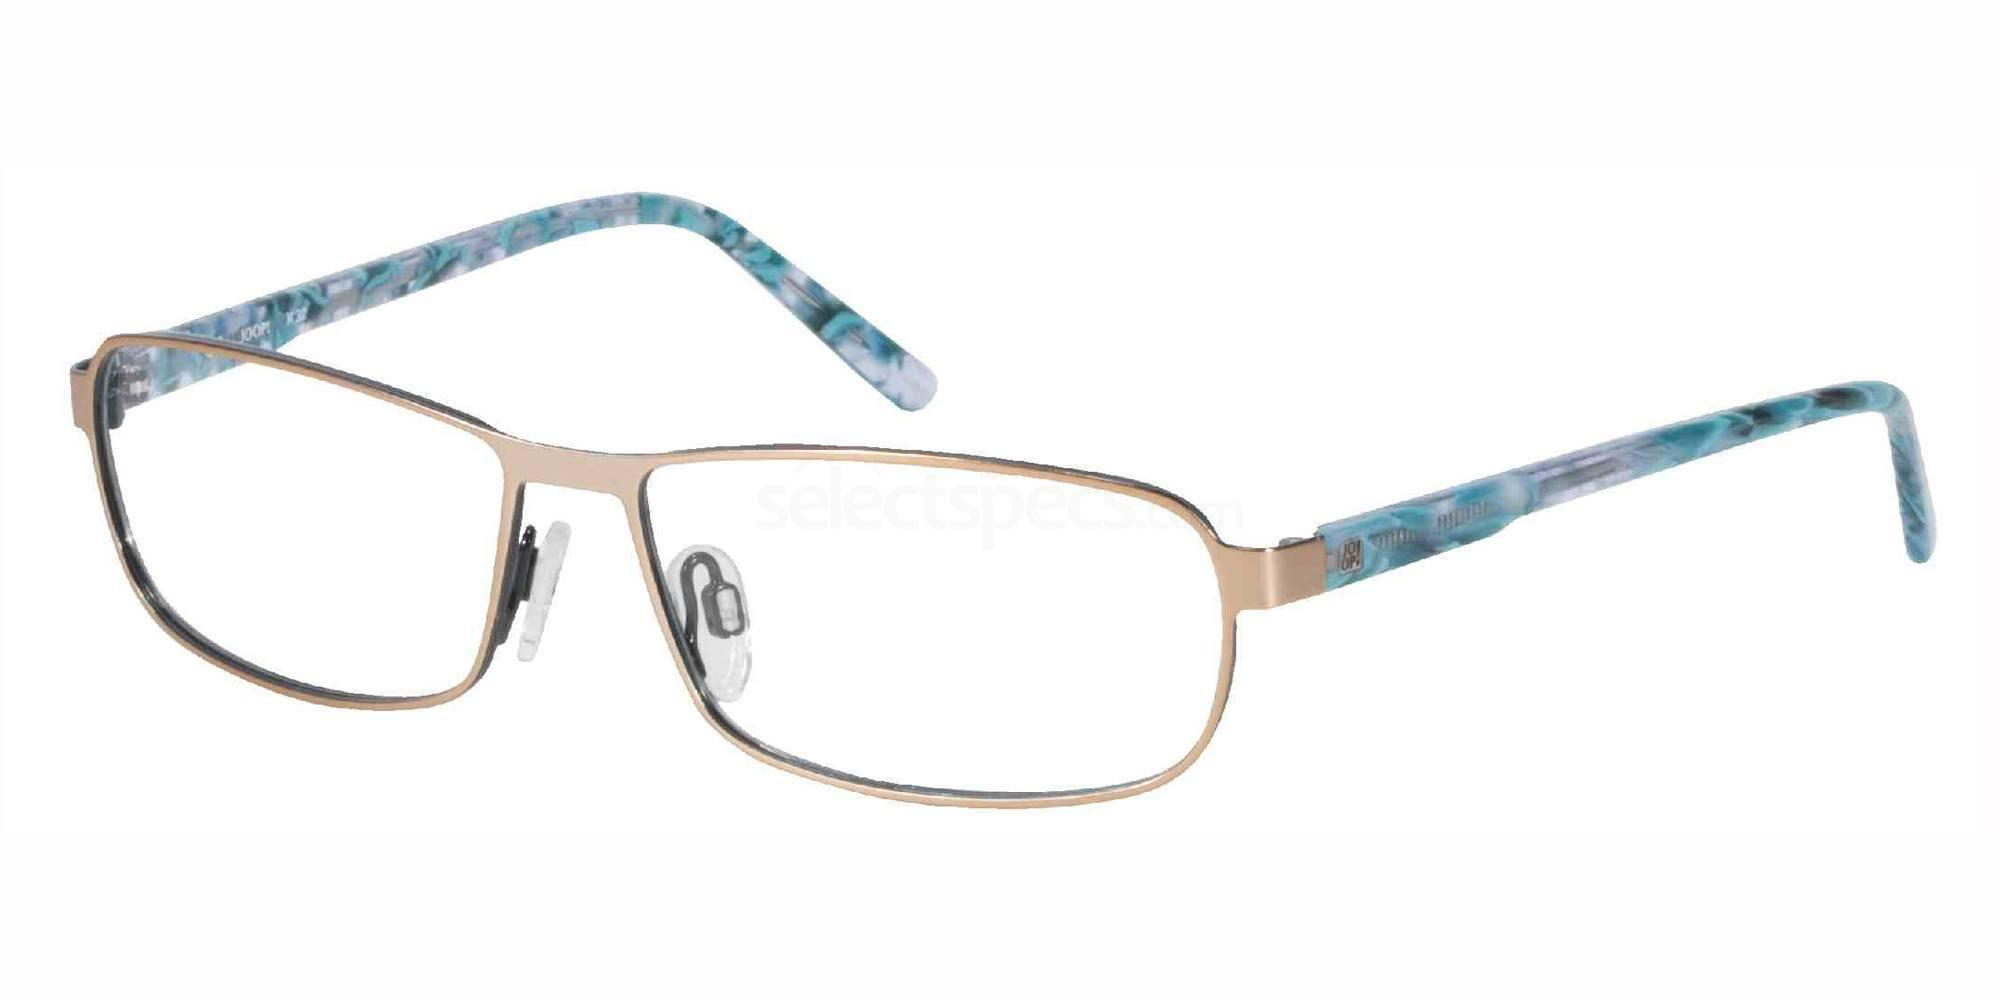 815 83150 Glasses, JOOP Eyewear